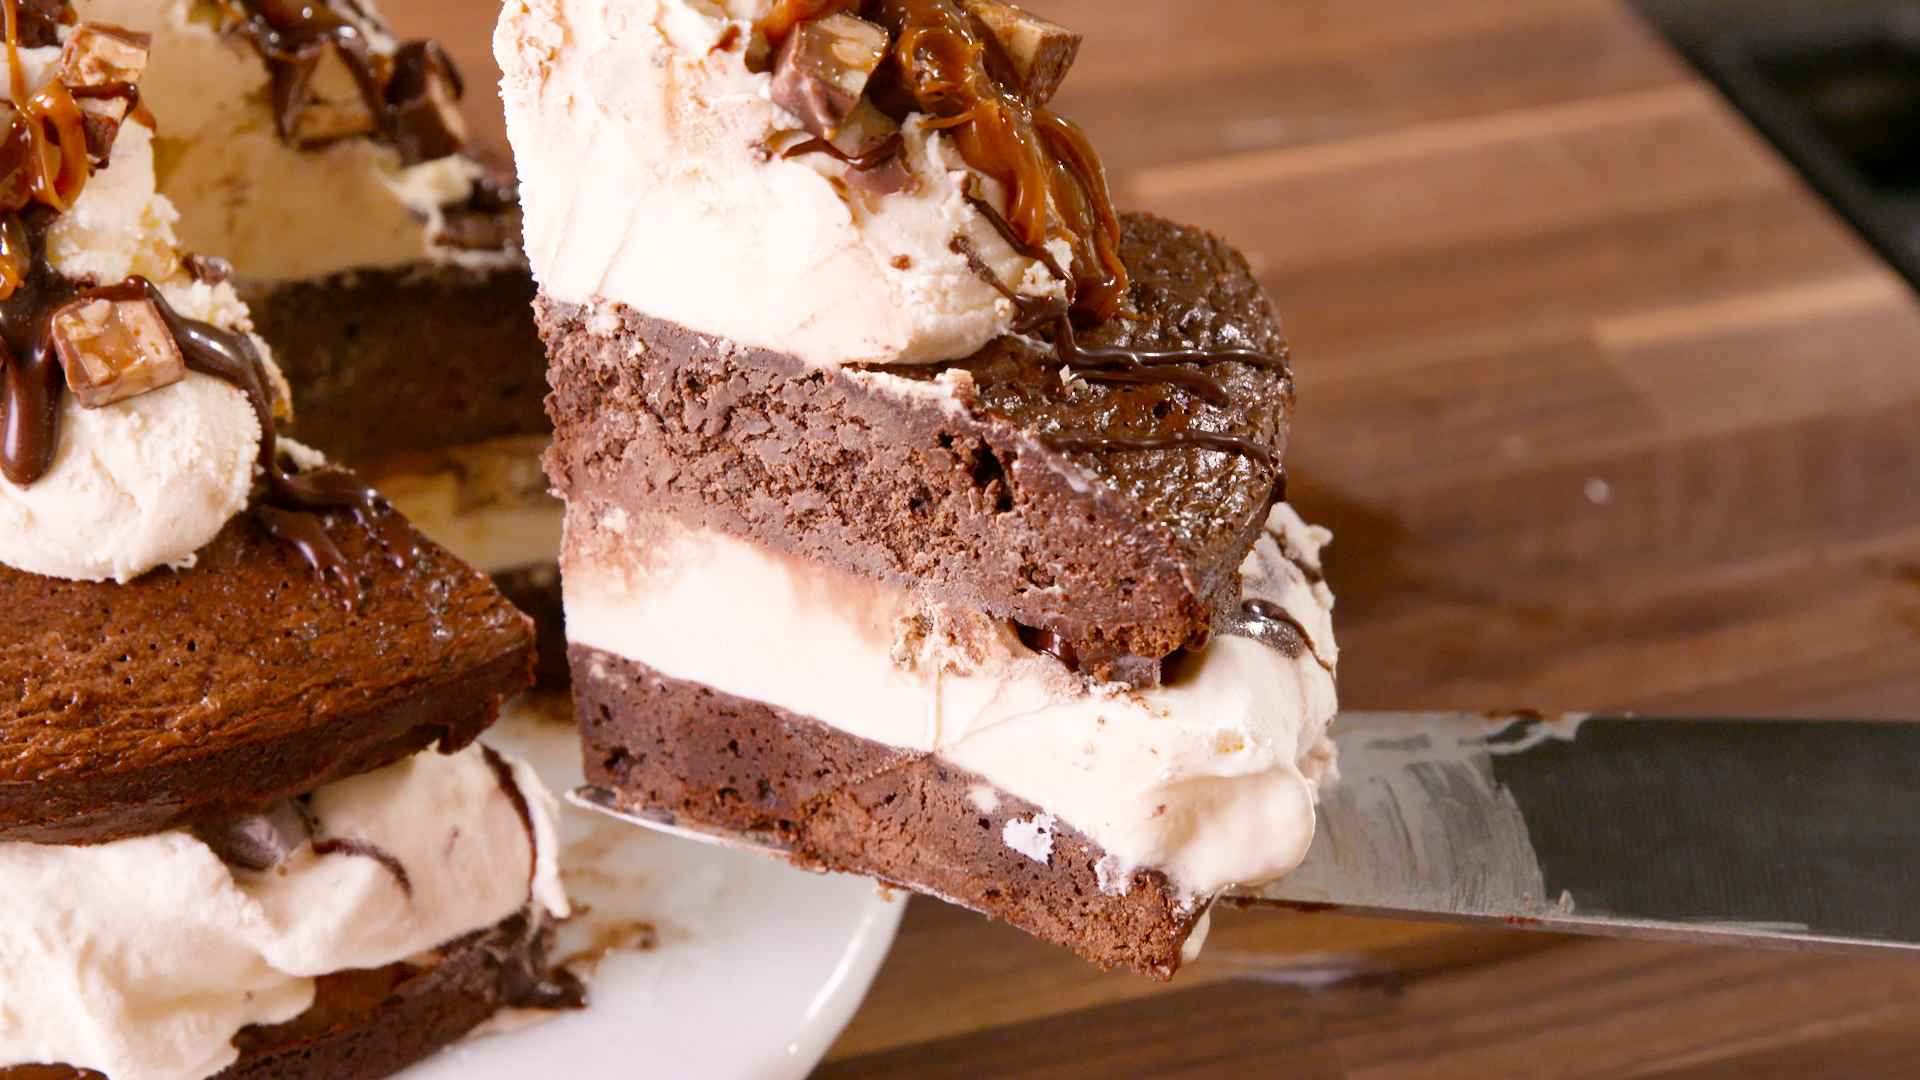 Cake Recipes In Pictures: 60 Best Ice Cream Cake Recipes